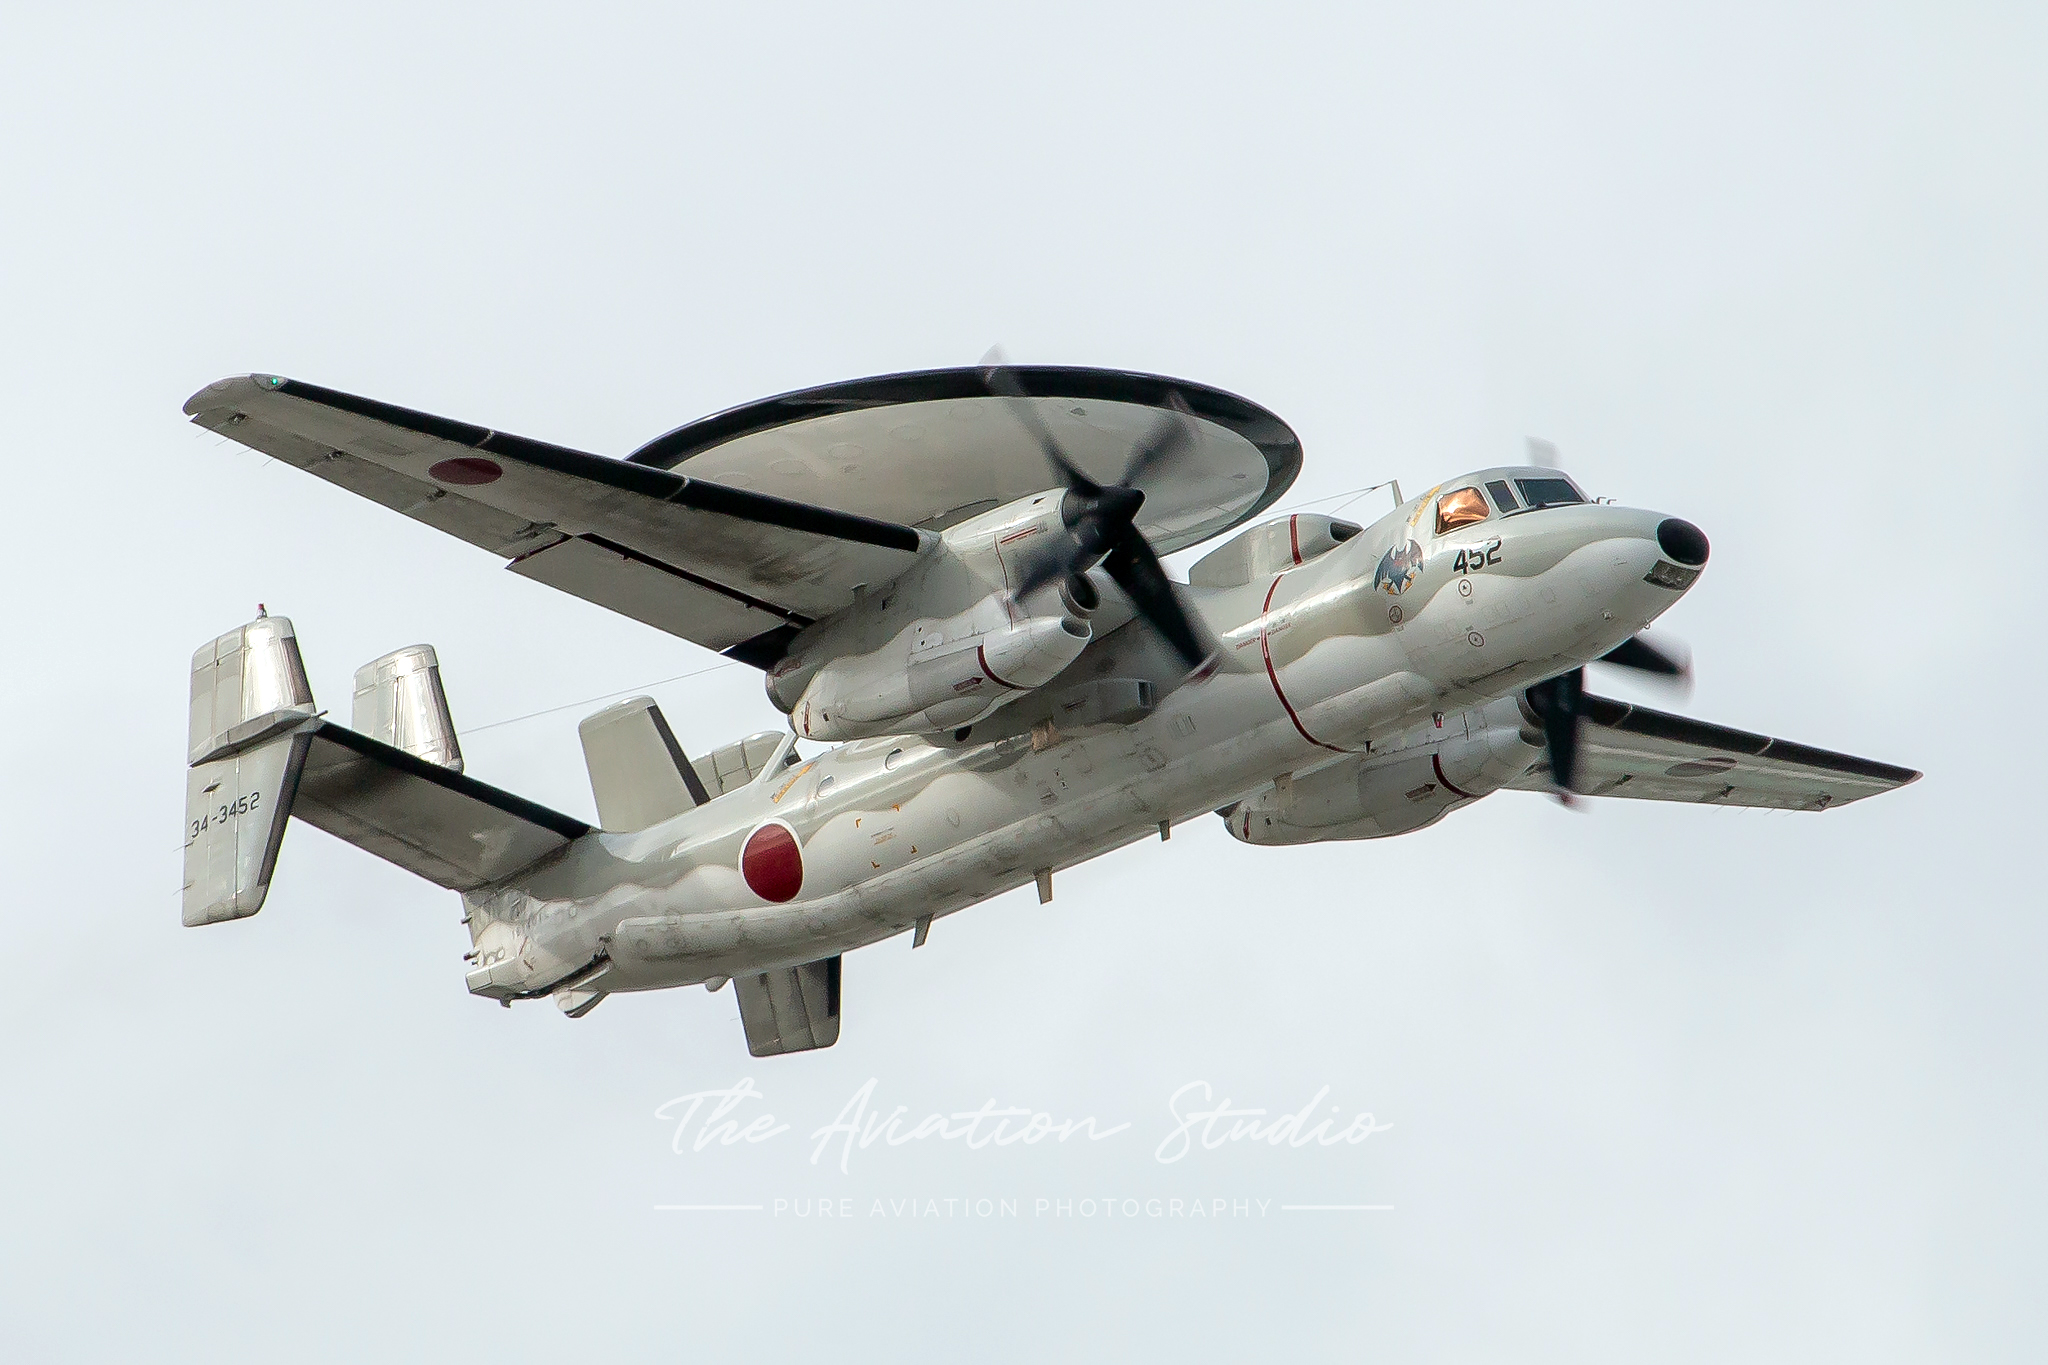 Northrop Grumman E-2C Hawkeye 34-3452 taking off from Naha Air Base (Image: Brock Little)